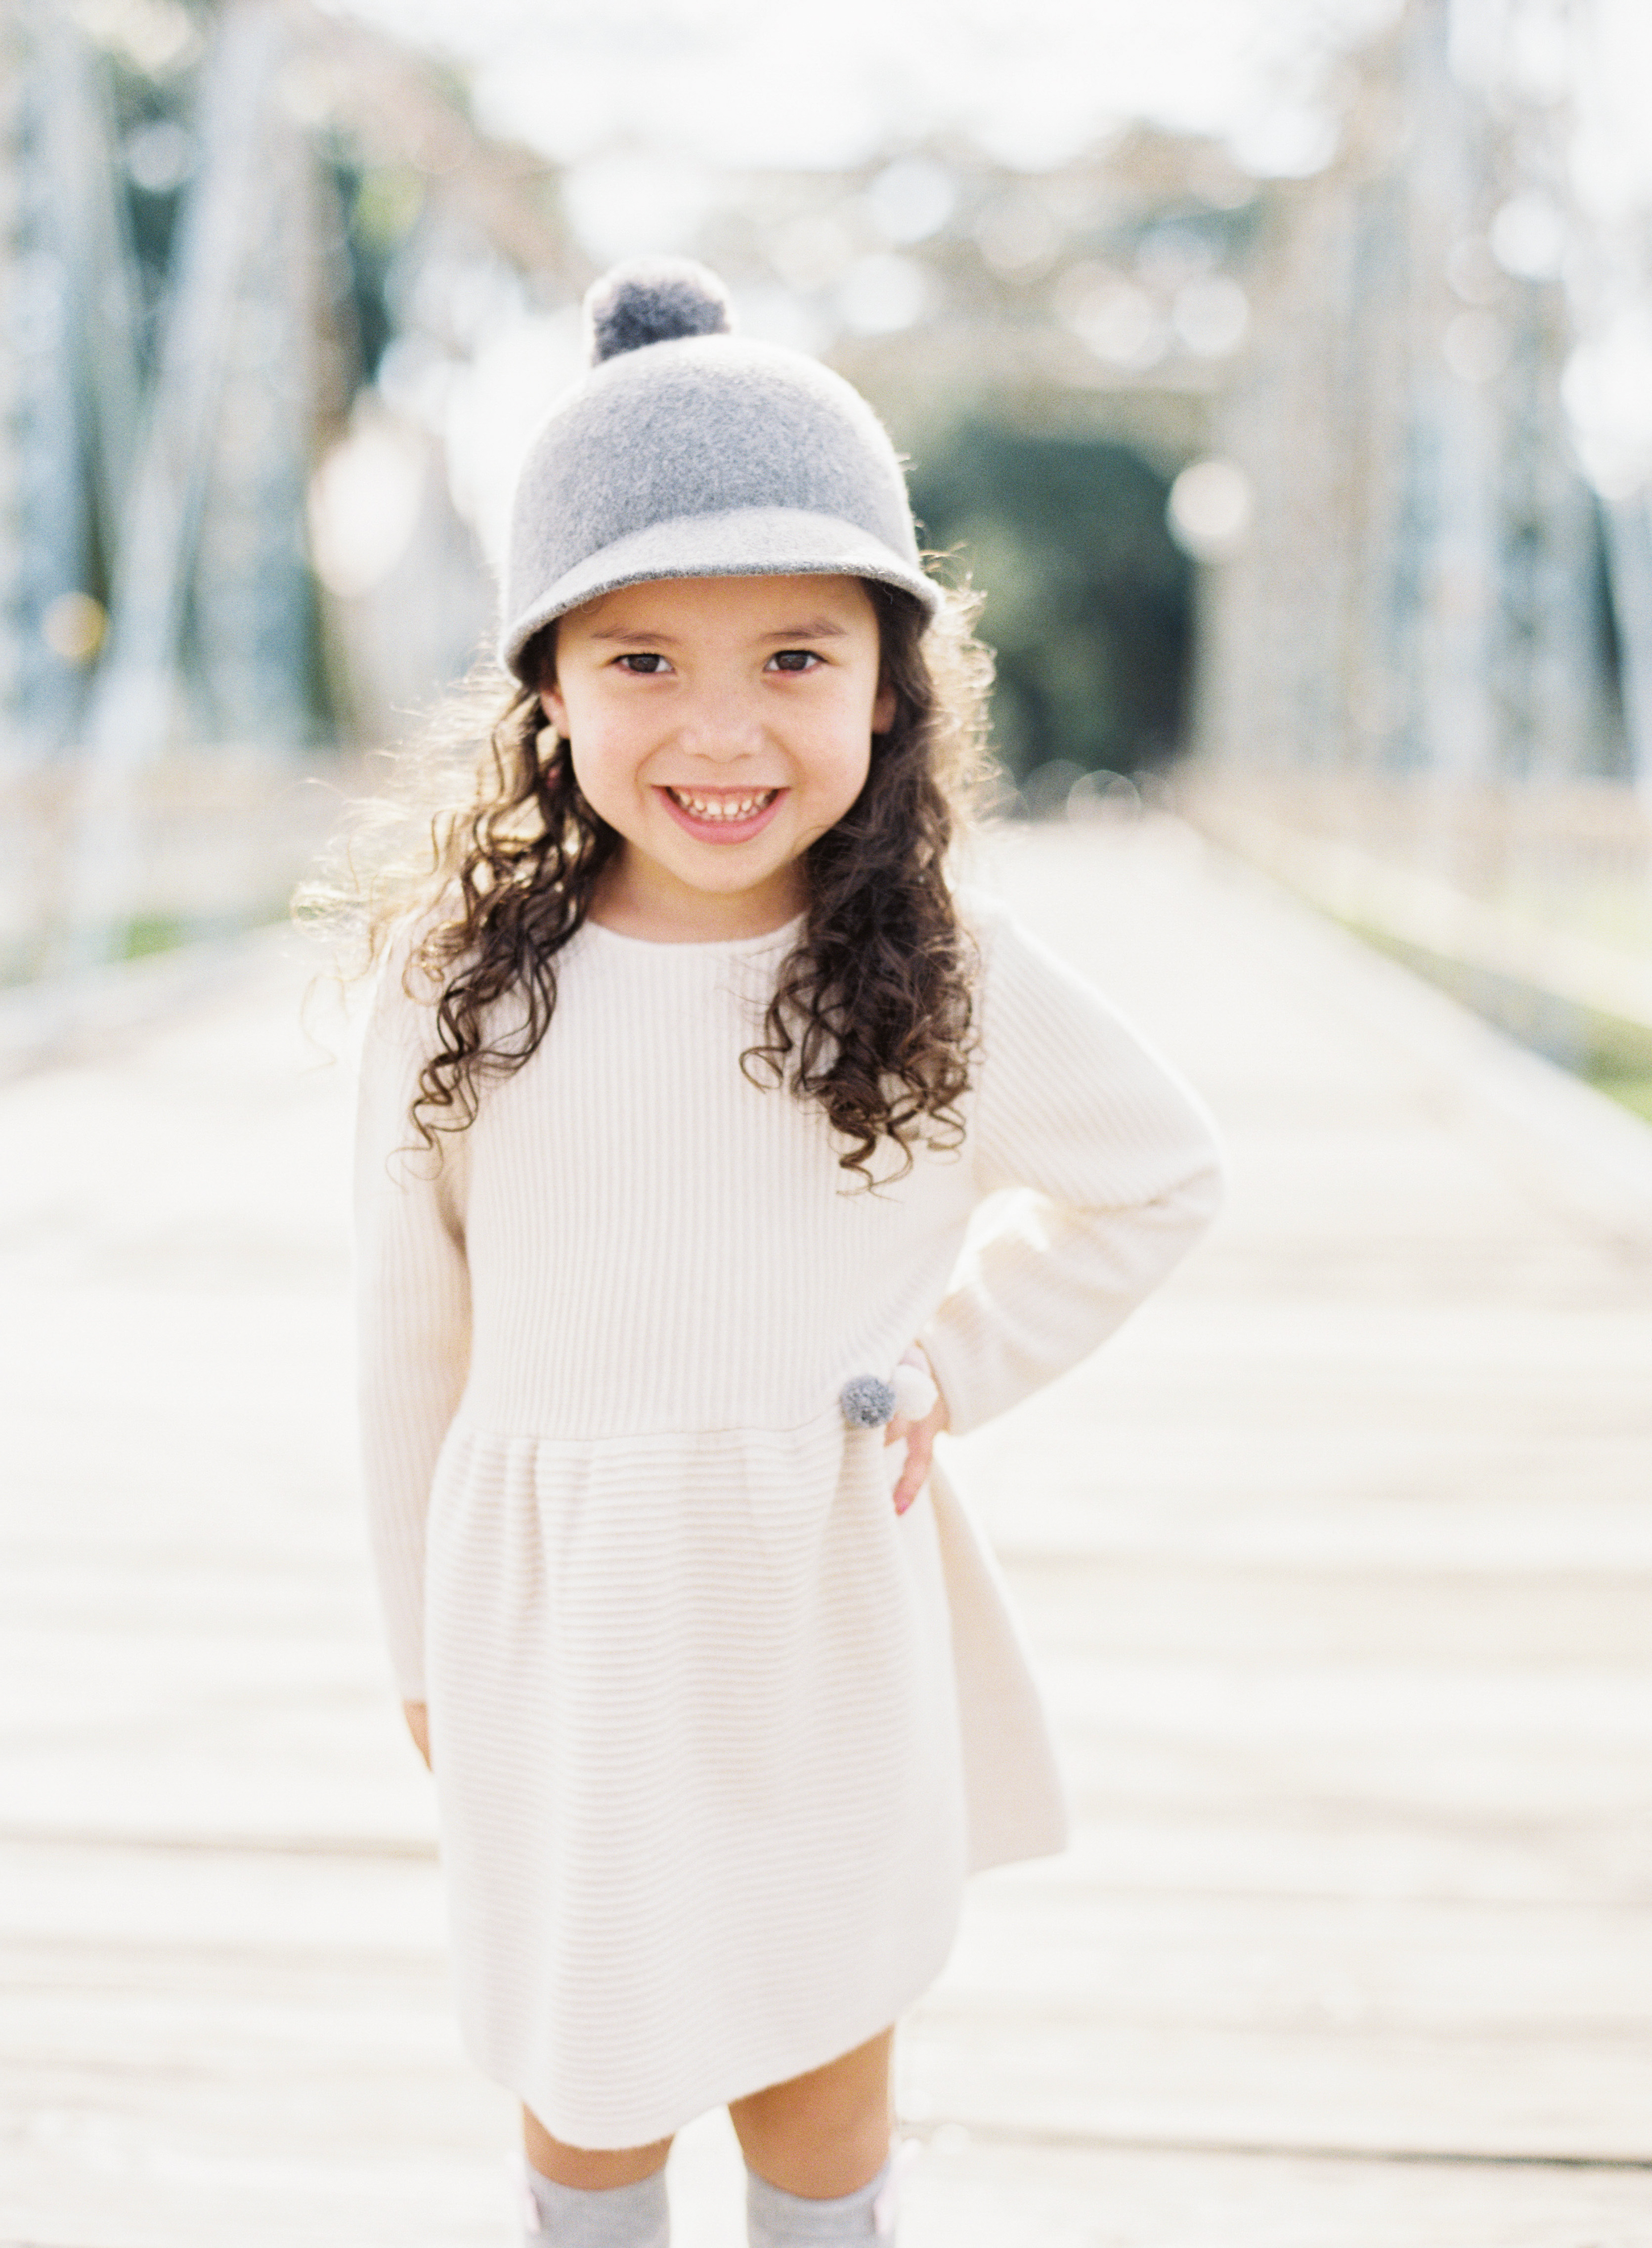 poses, what to wear, outdoor, ideas, with toddler, park, toddler pose, sisters